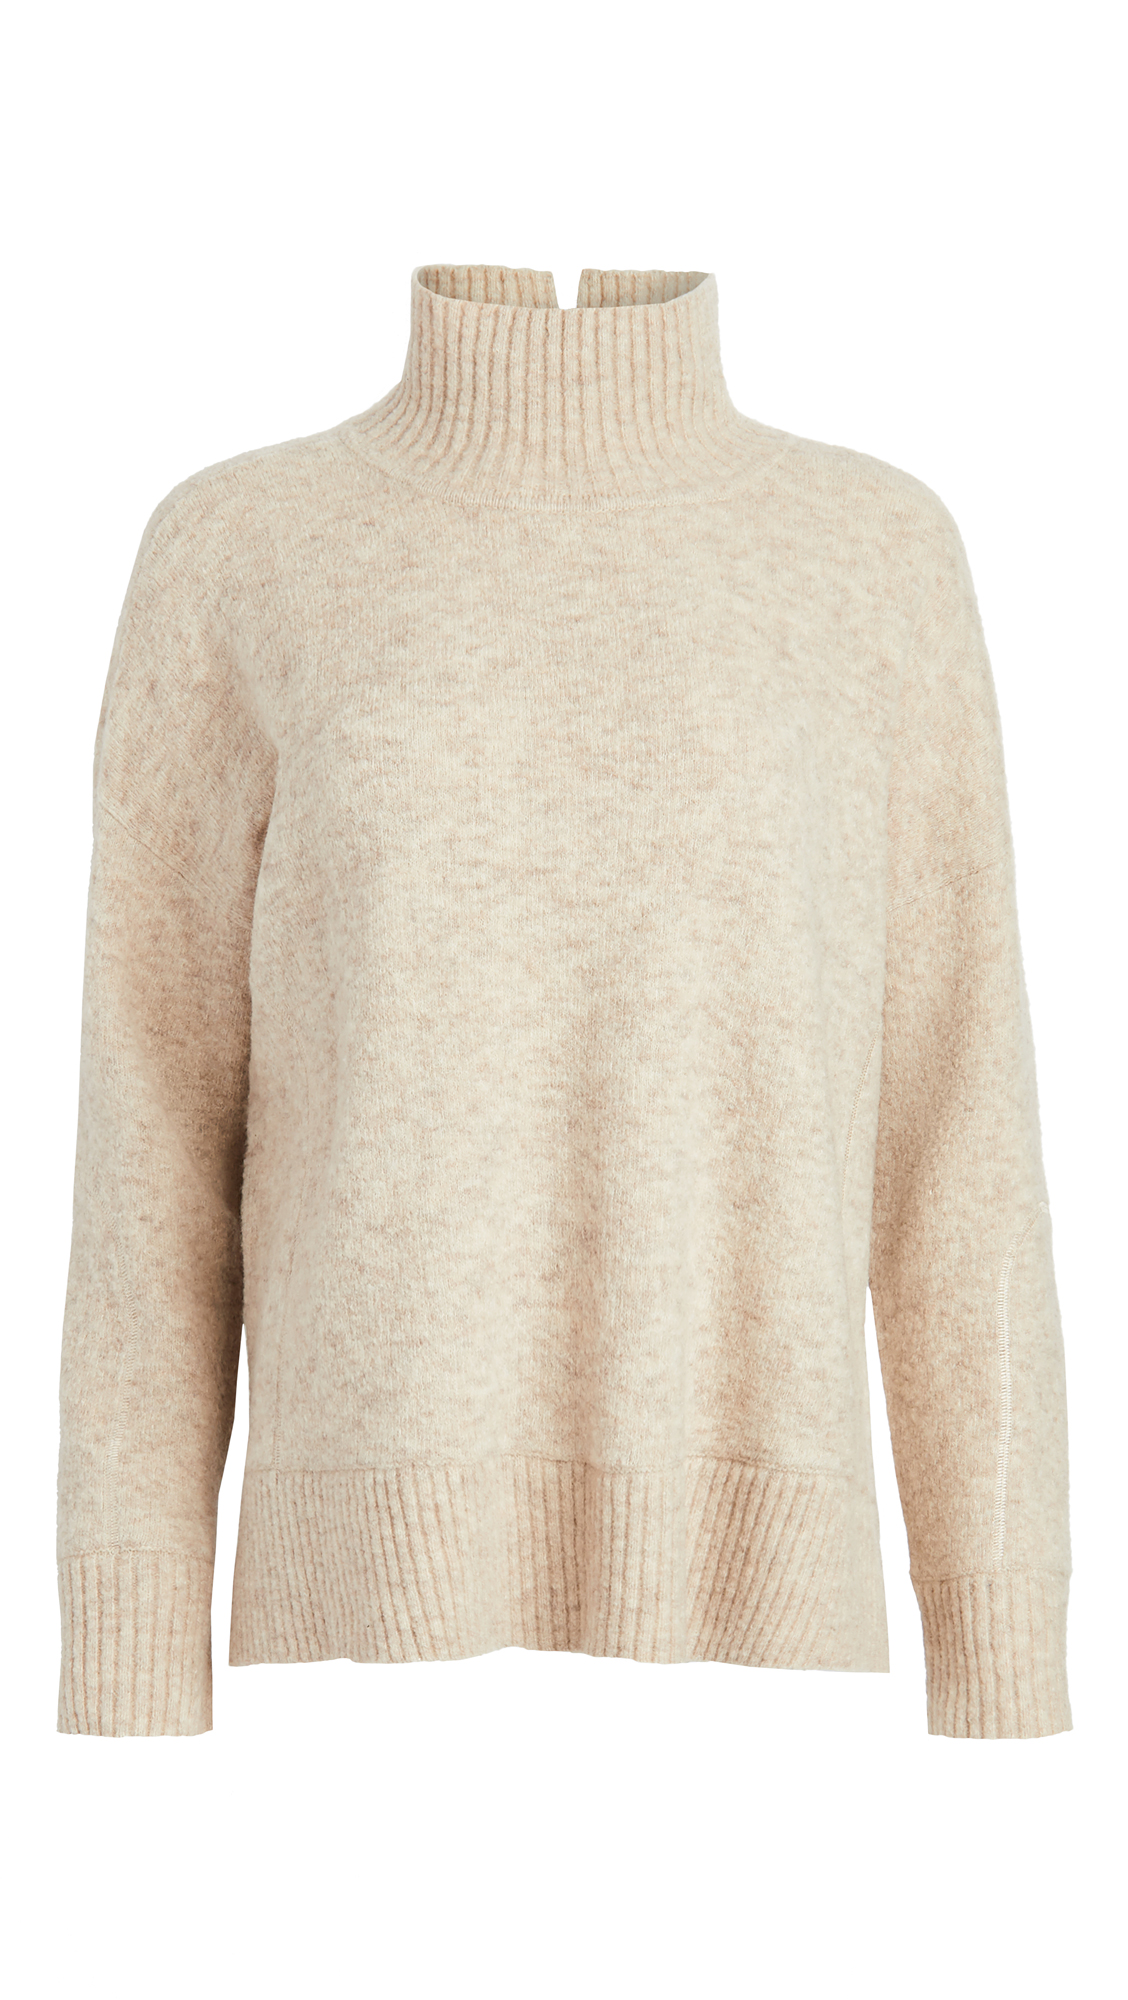 Club Monaco Oversized Turtleneck Sweater